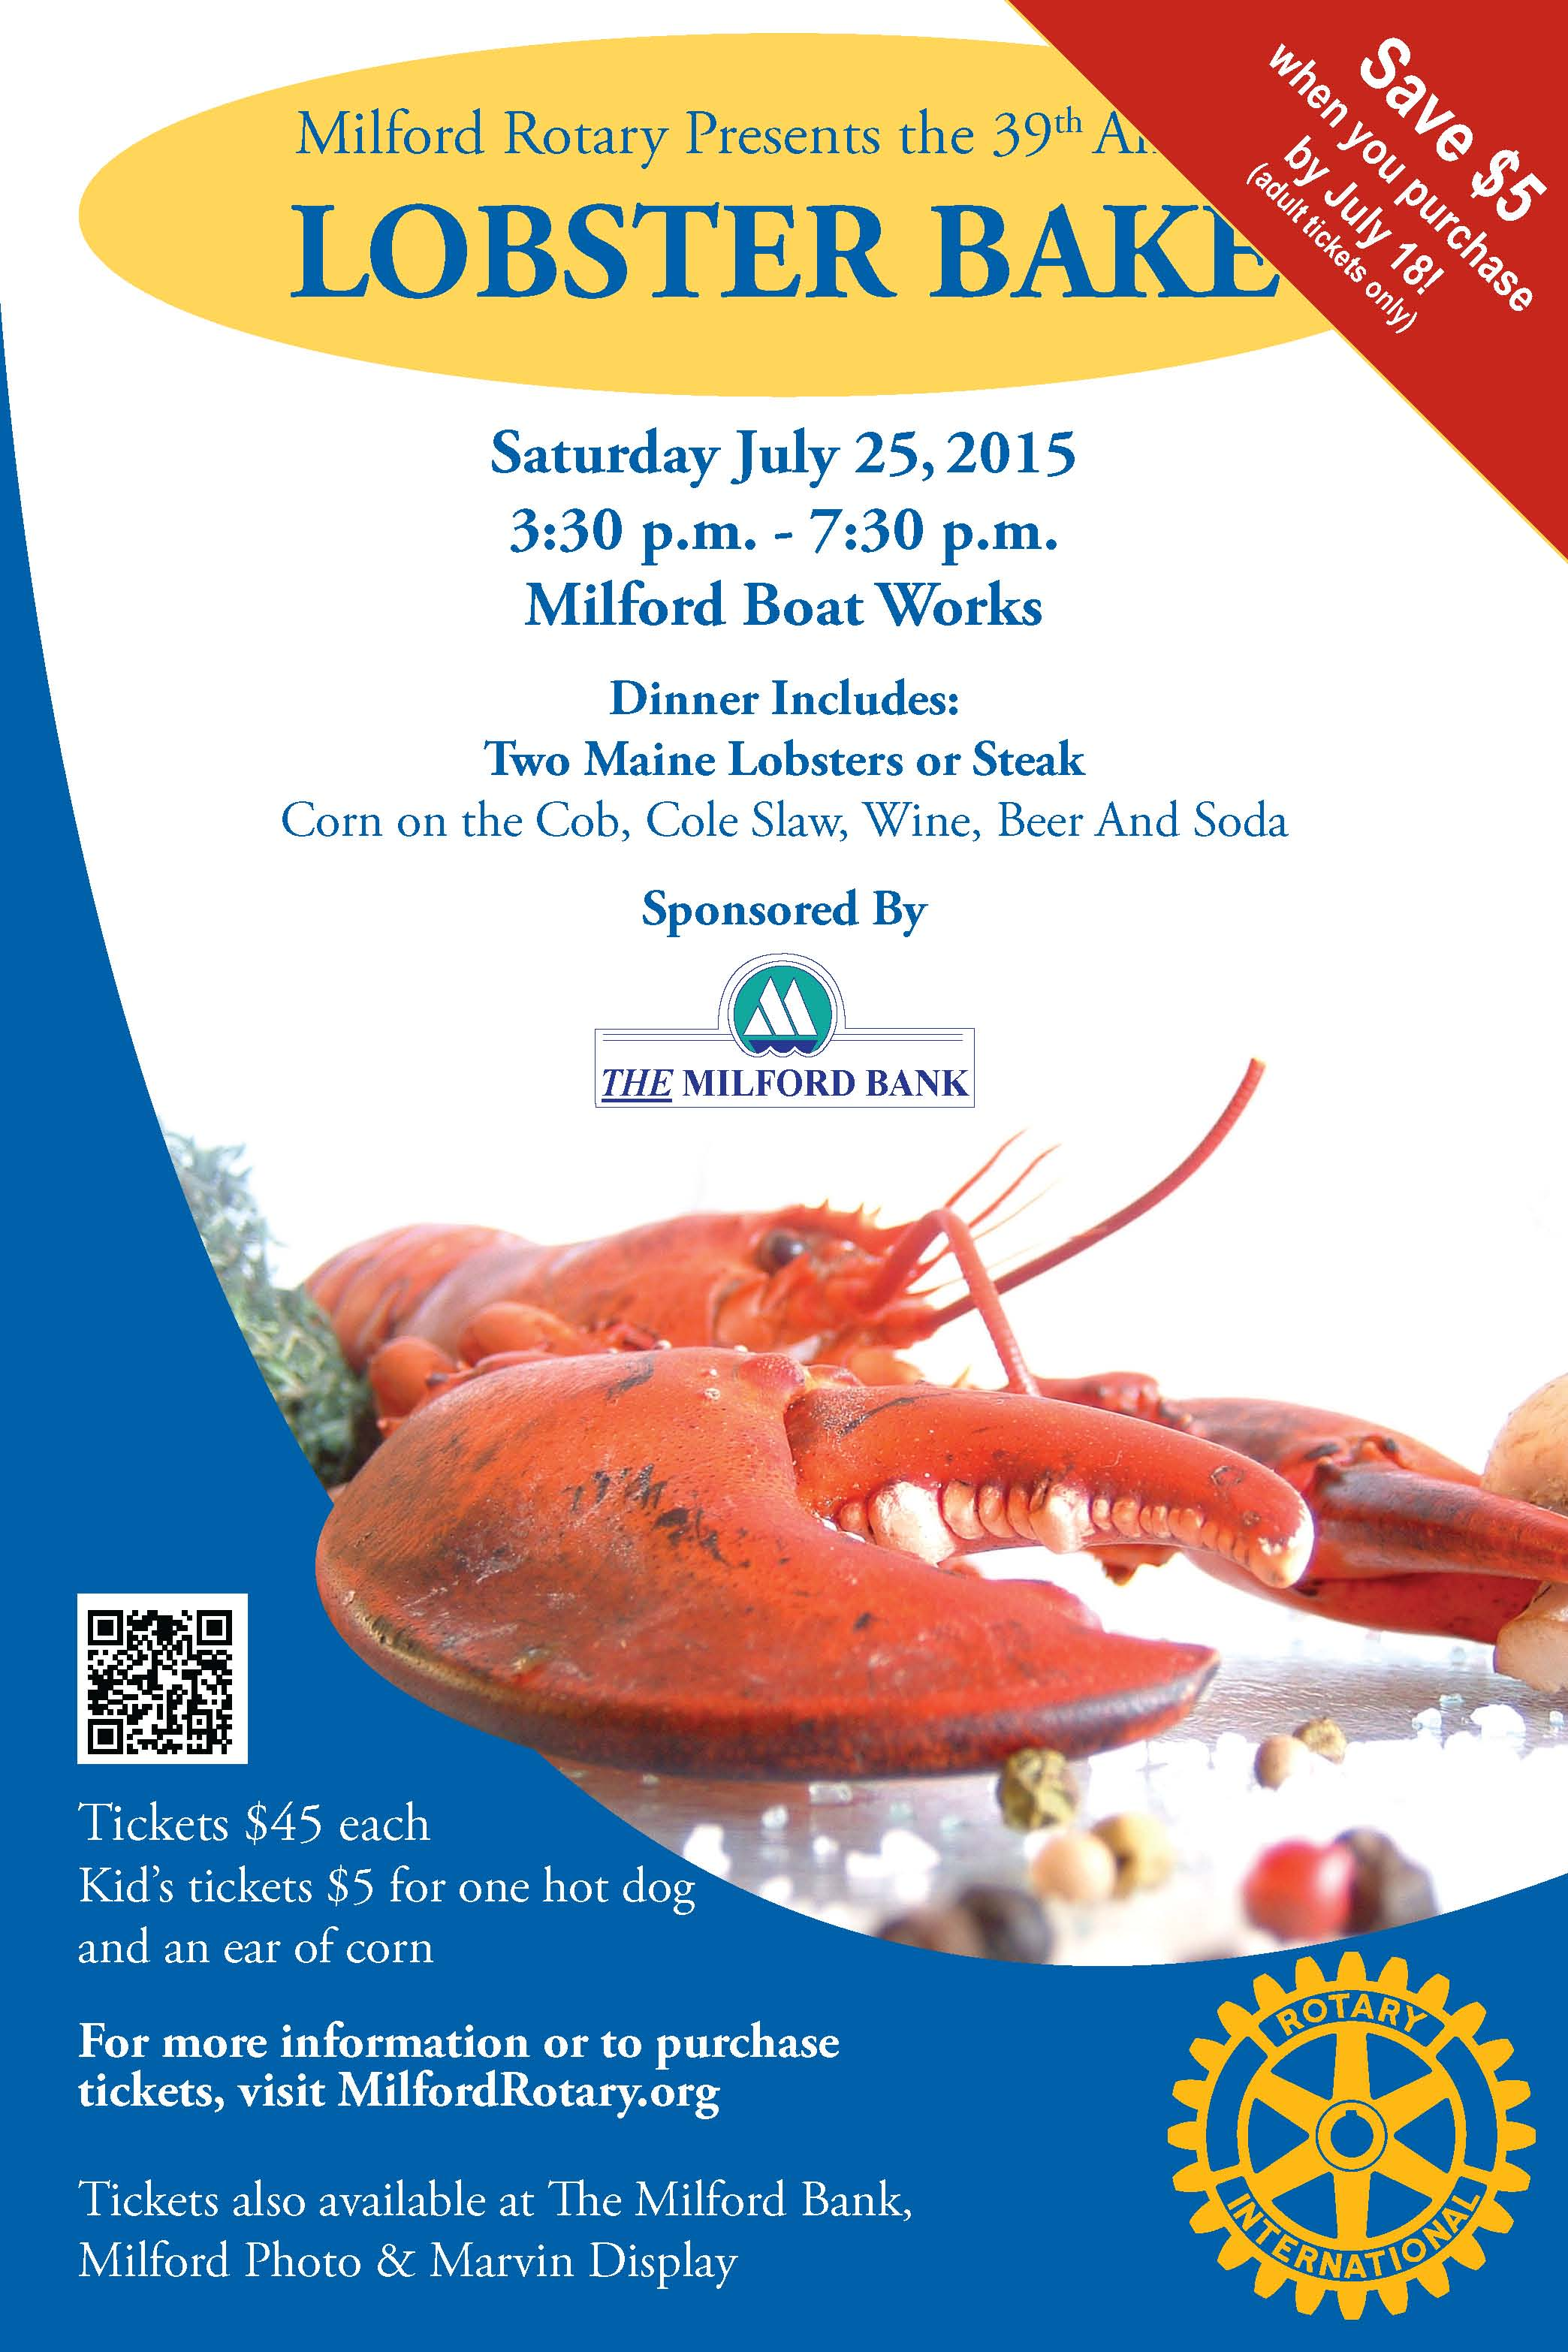 Lobster Bake July 25, 2015